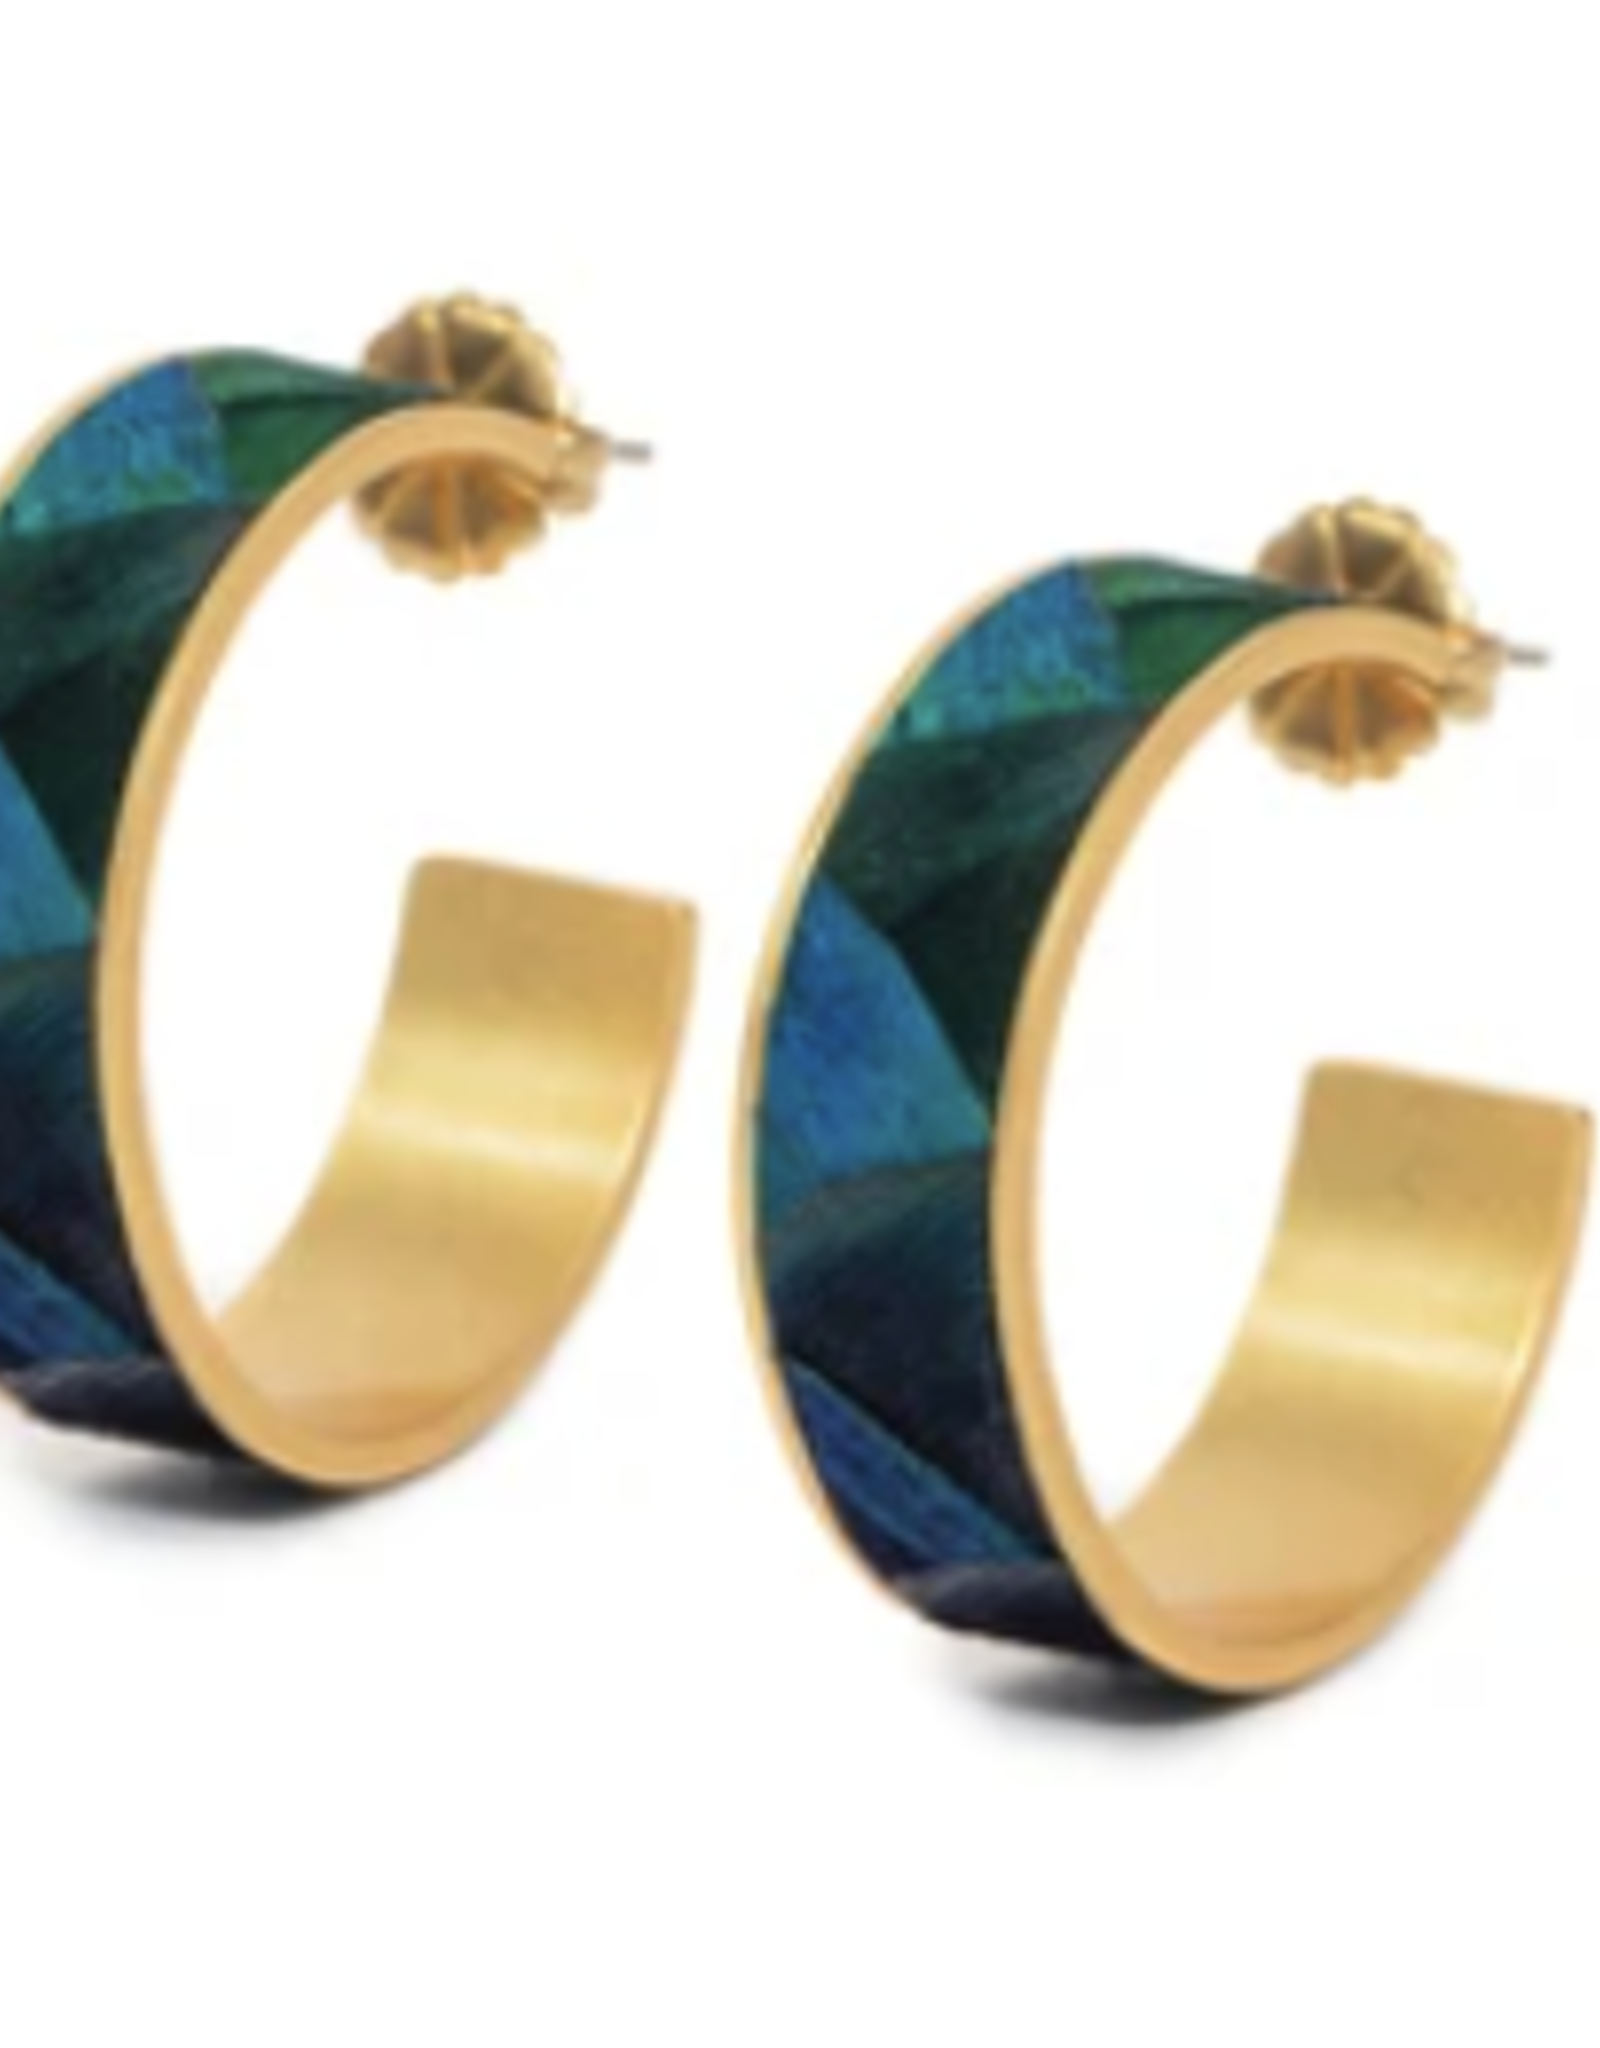 Brackish Stef Earrings - Peacock Feathers